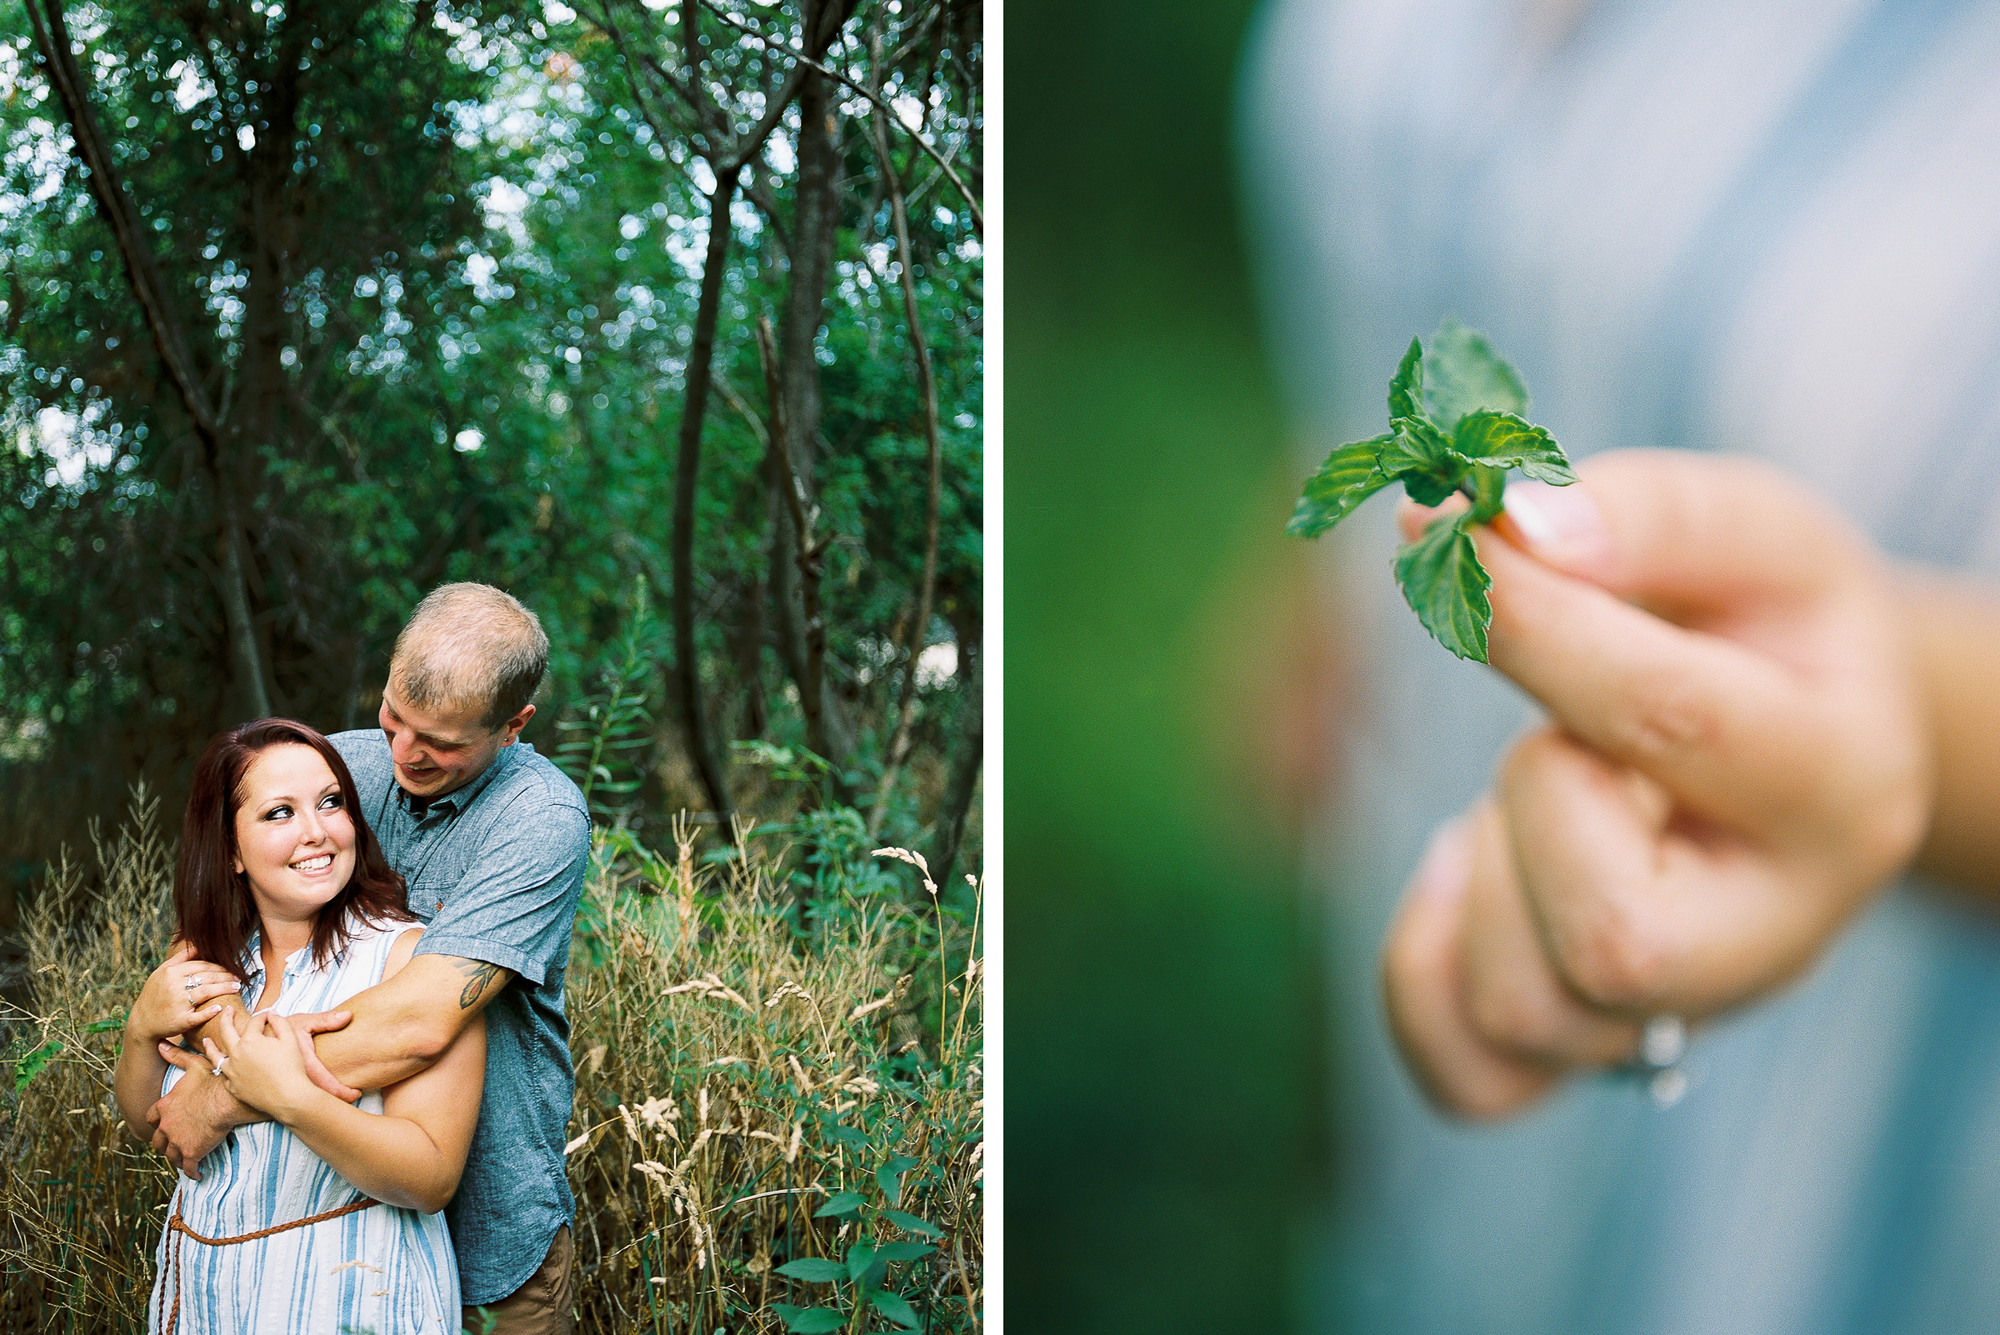 Alexandra-Elise-Photography-Ali-Reed-Film-Farm-Engagement-Session-036